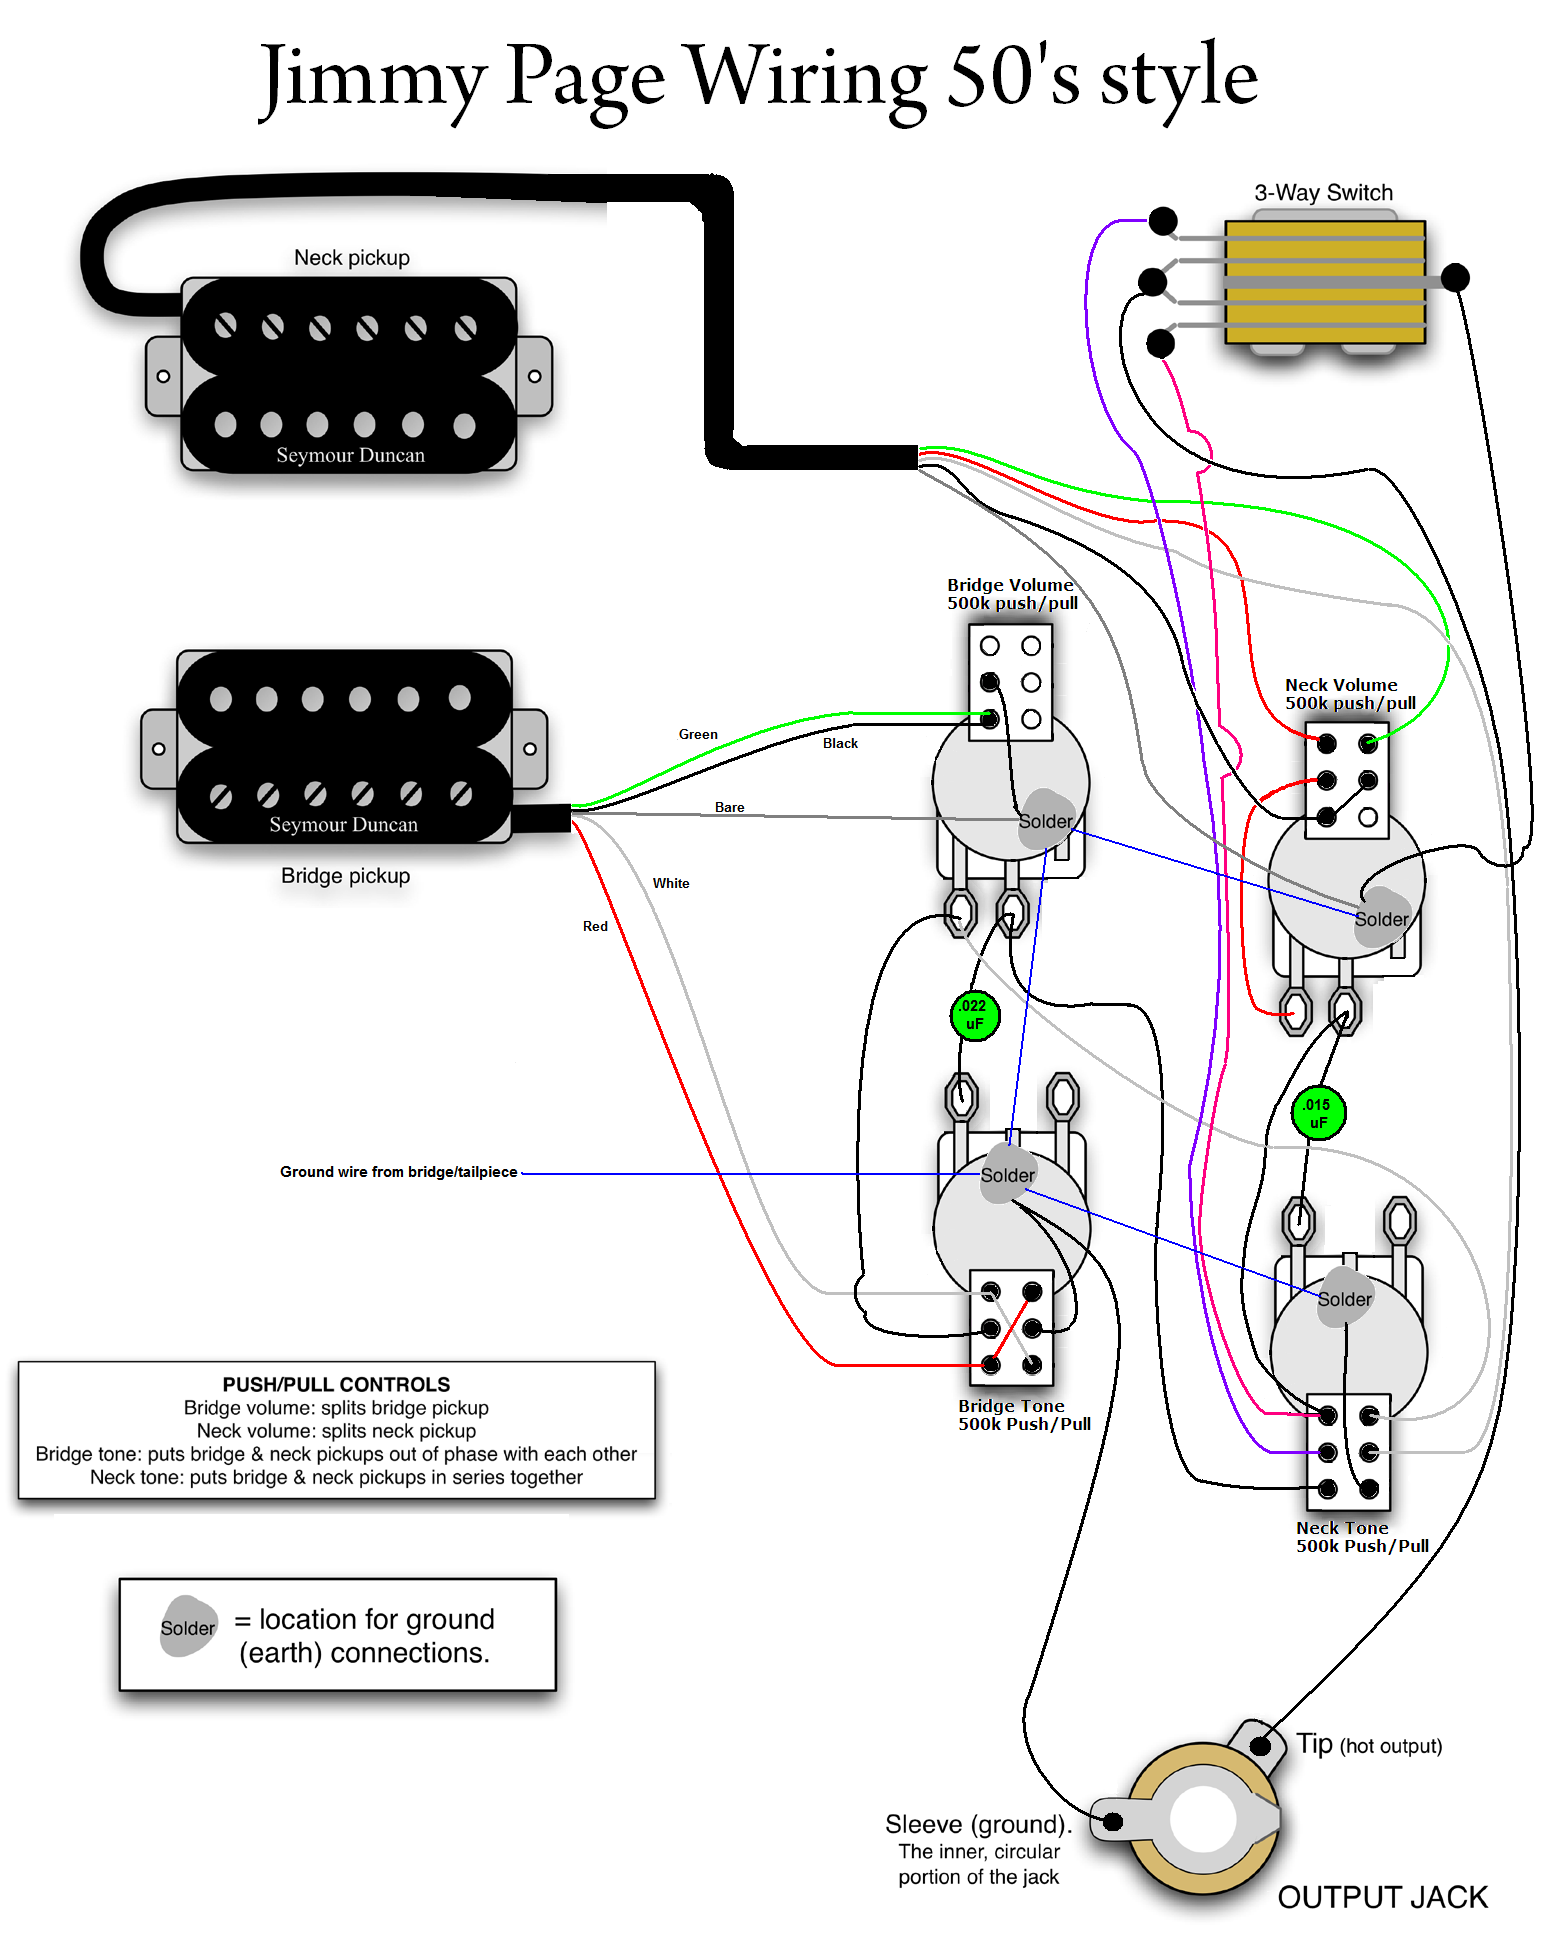 small resolution of jimmy page 50s wiring mylespaul com instruments pinterest jimmy page stratocaster jimmy page wiring sg